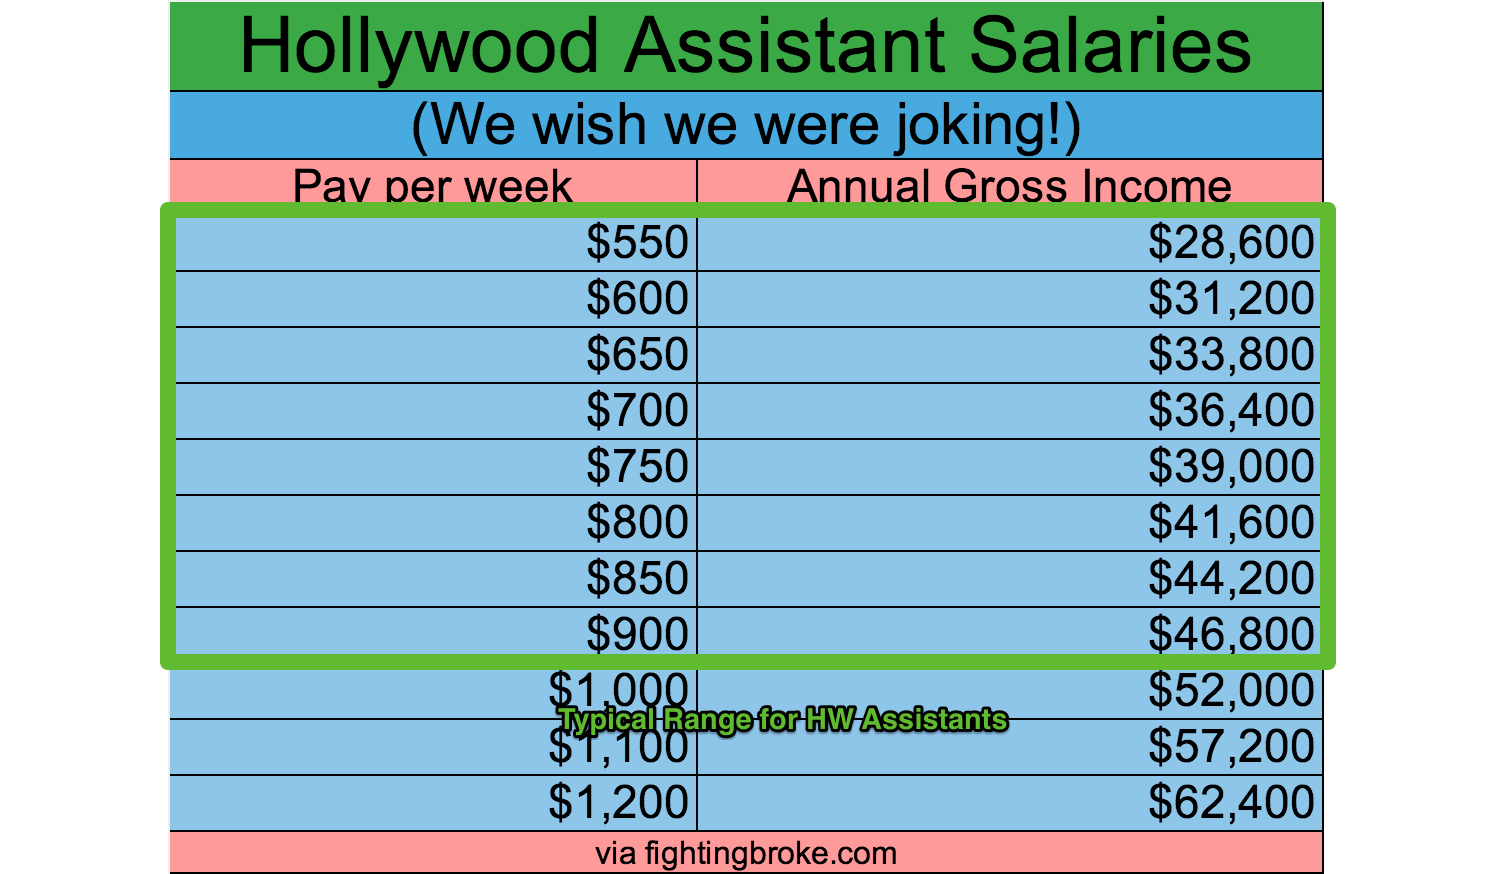 What entry-level Hollywood jobs pay $35K starting